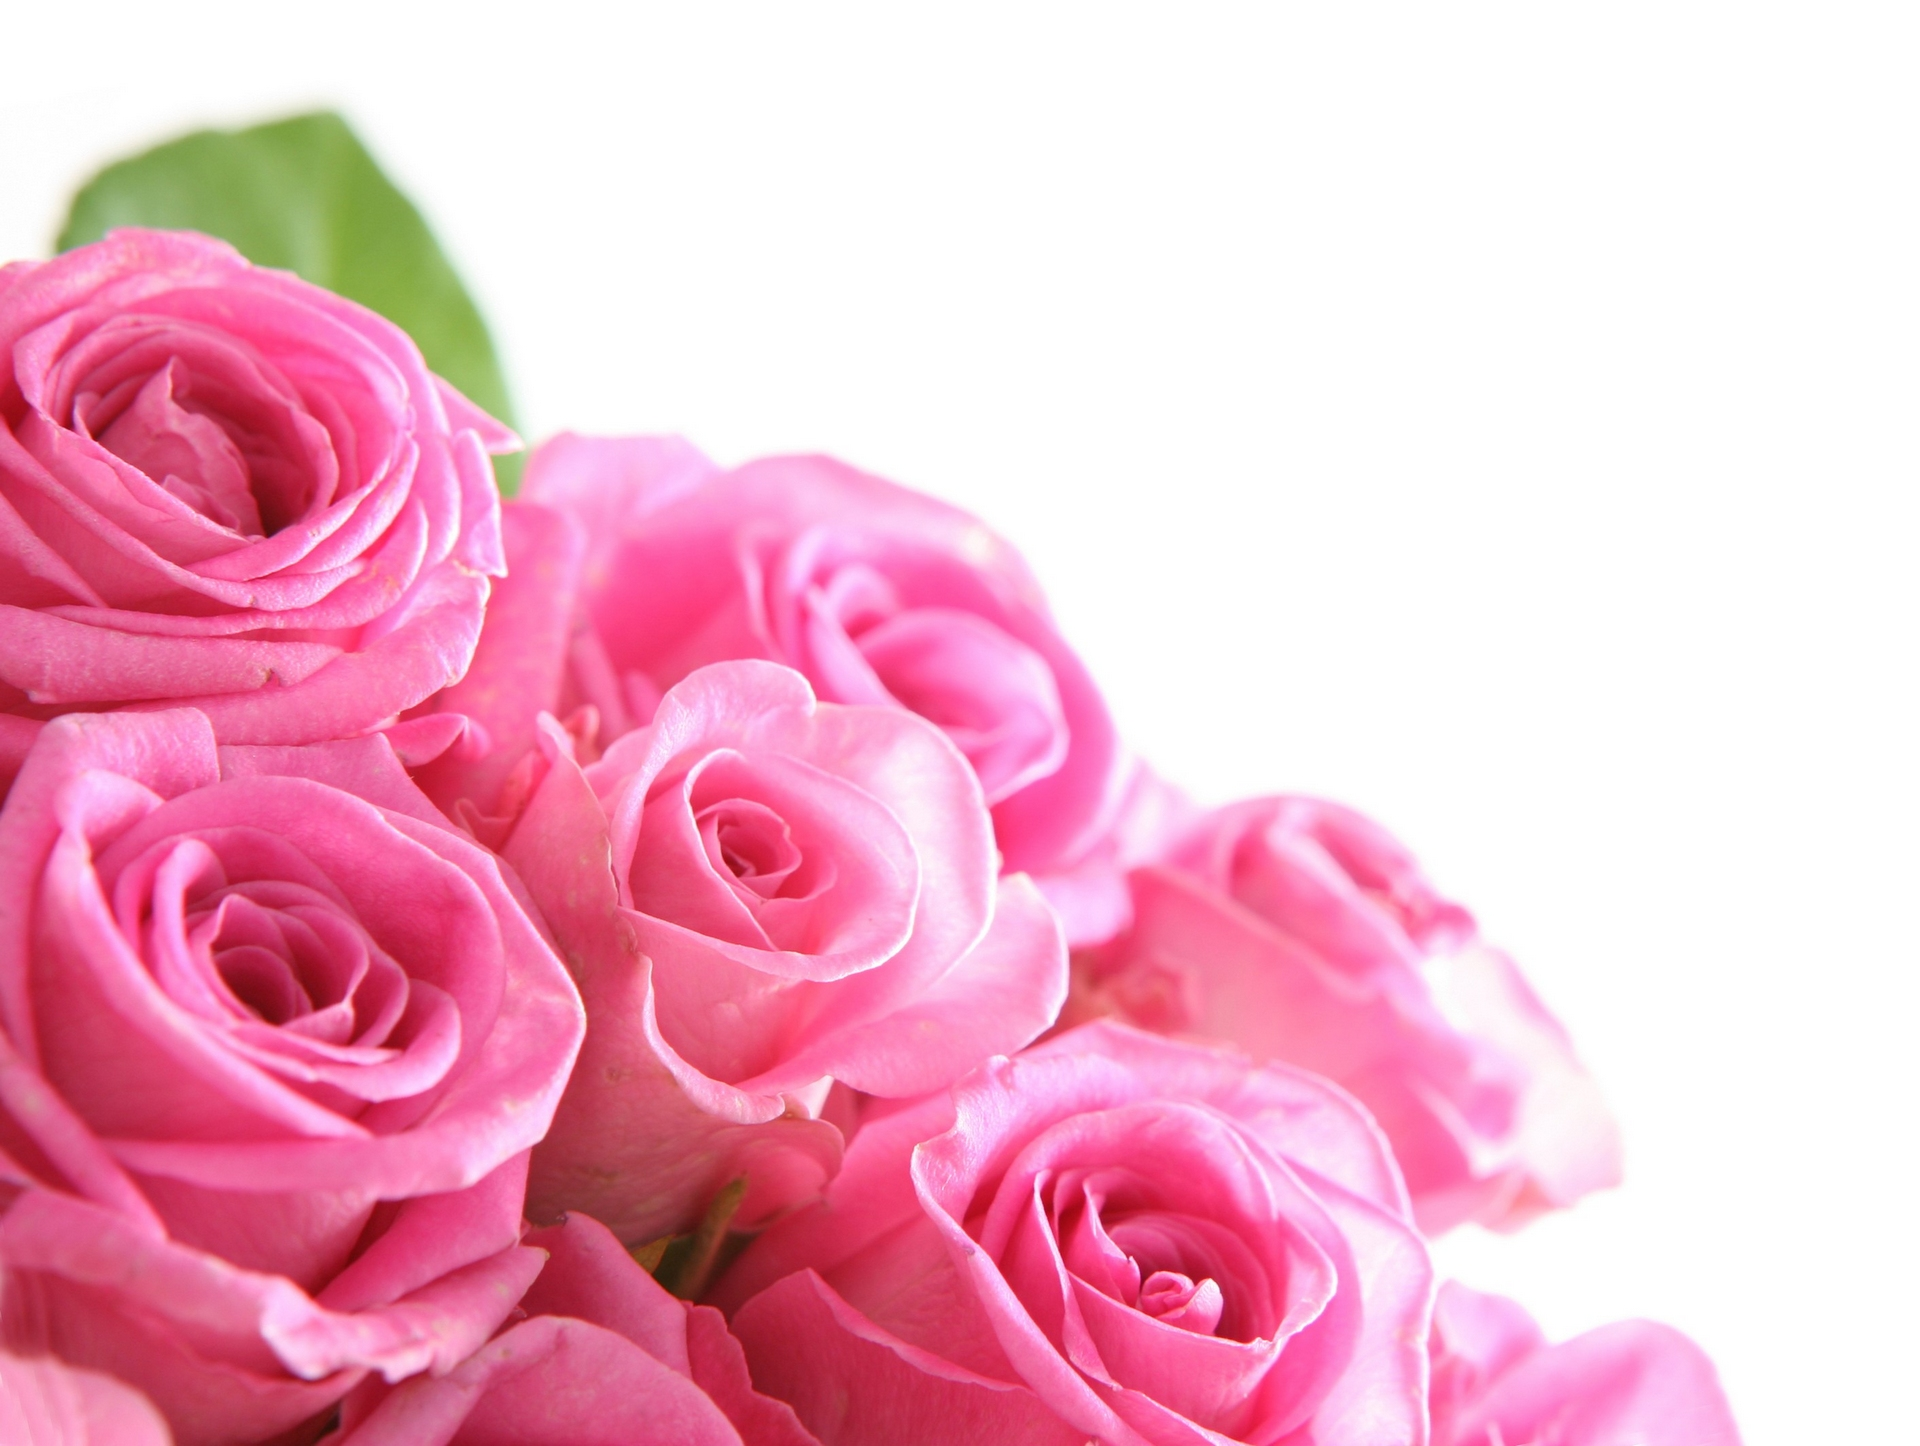 Pink Color Images Roses Hd Wallpaper And Background Photos